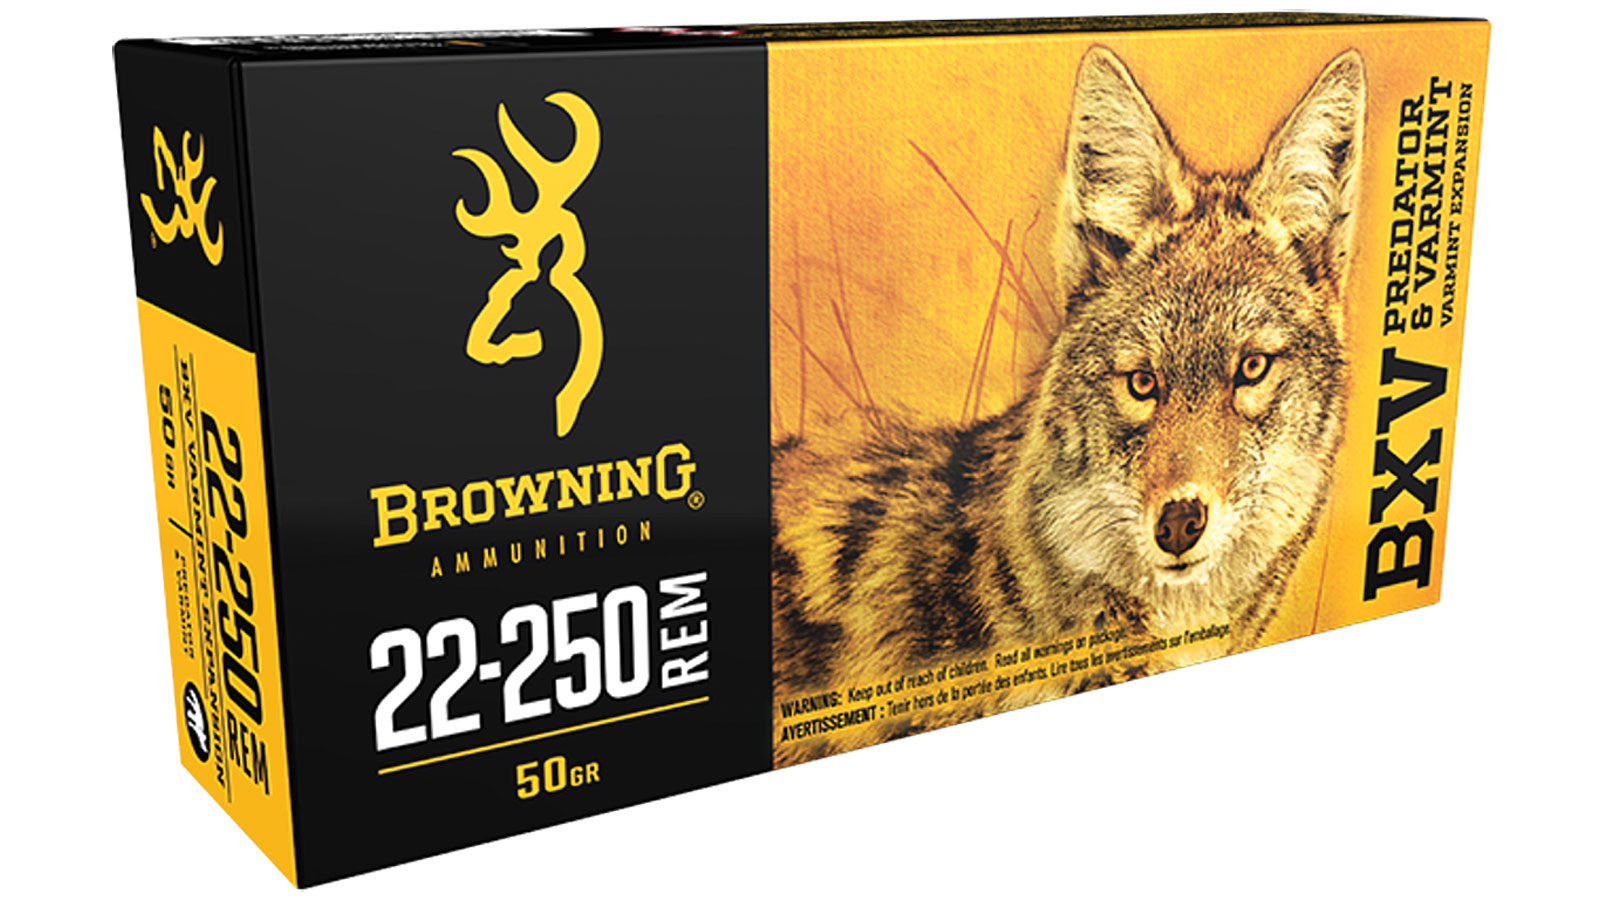 Browning Ammo B192322250 BXV Predator and Varmint 22-250 Remington 50 GR Varmint 20 Bx| 10 Cs